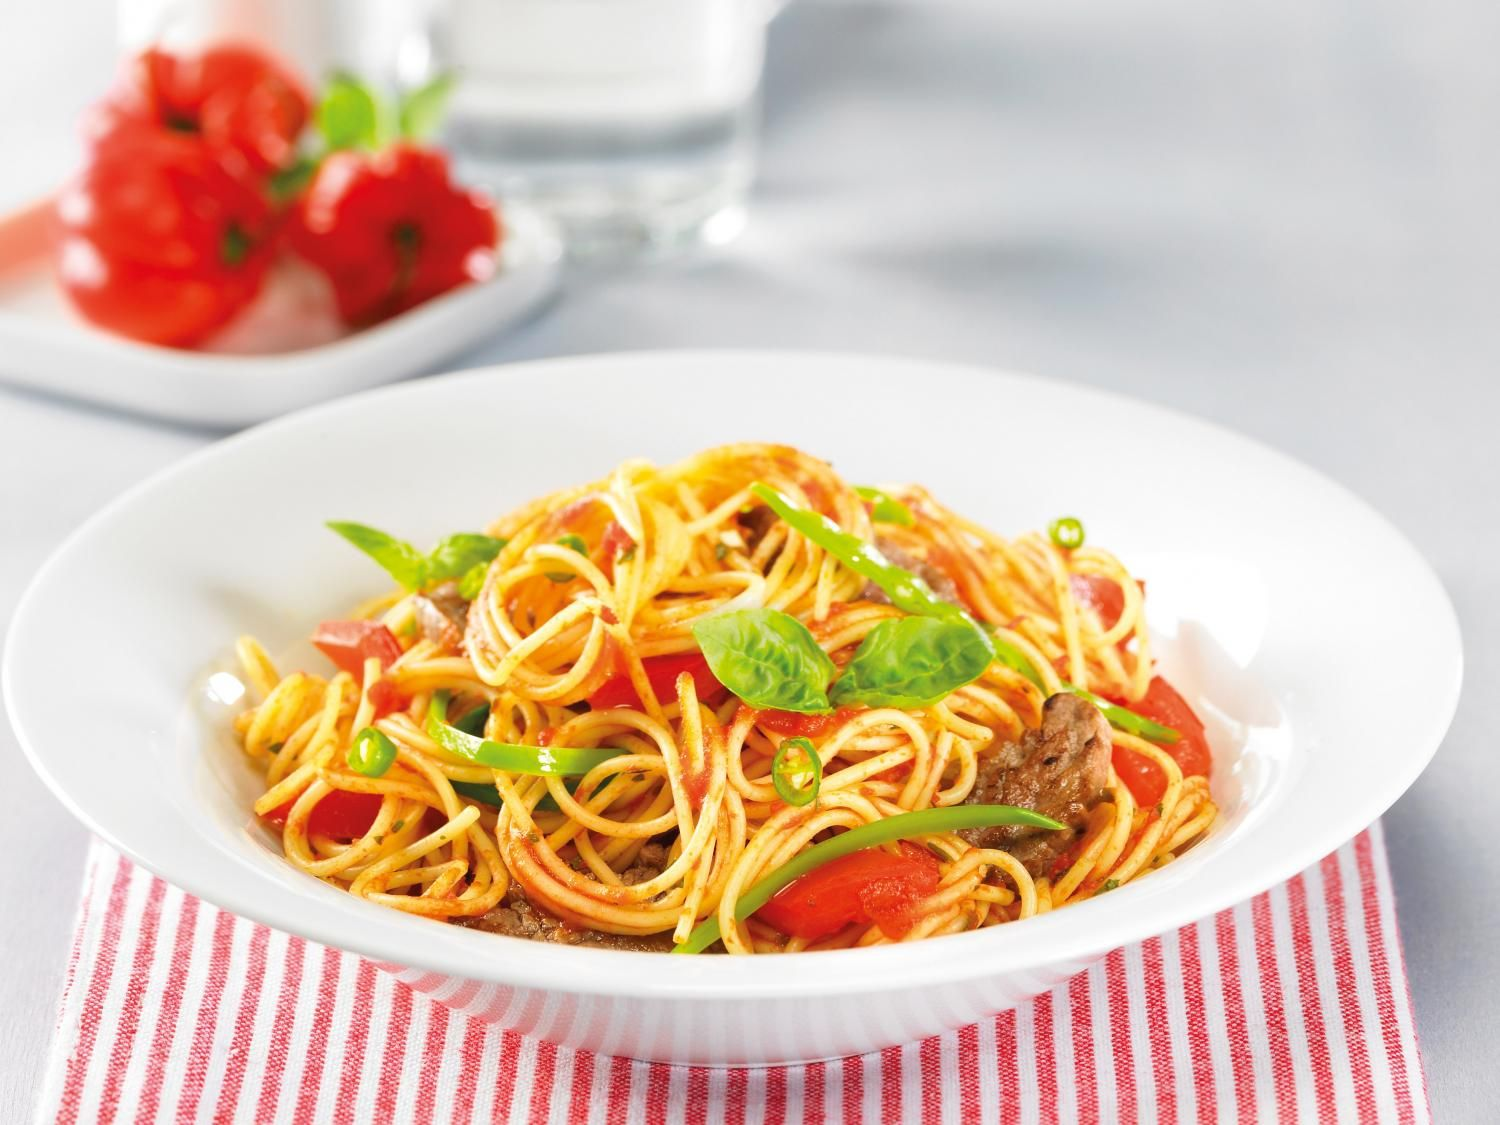 Latest Recipes - Try our delicious Tamatim recipes